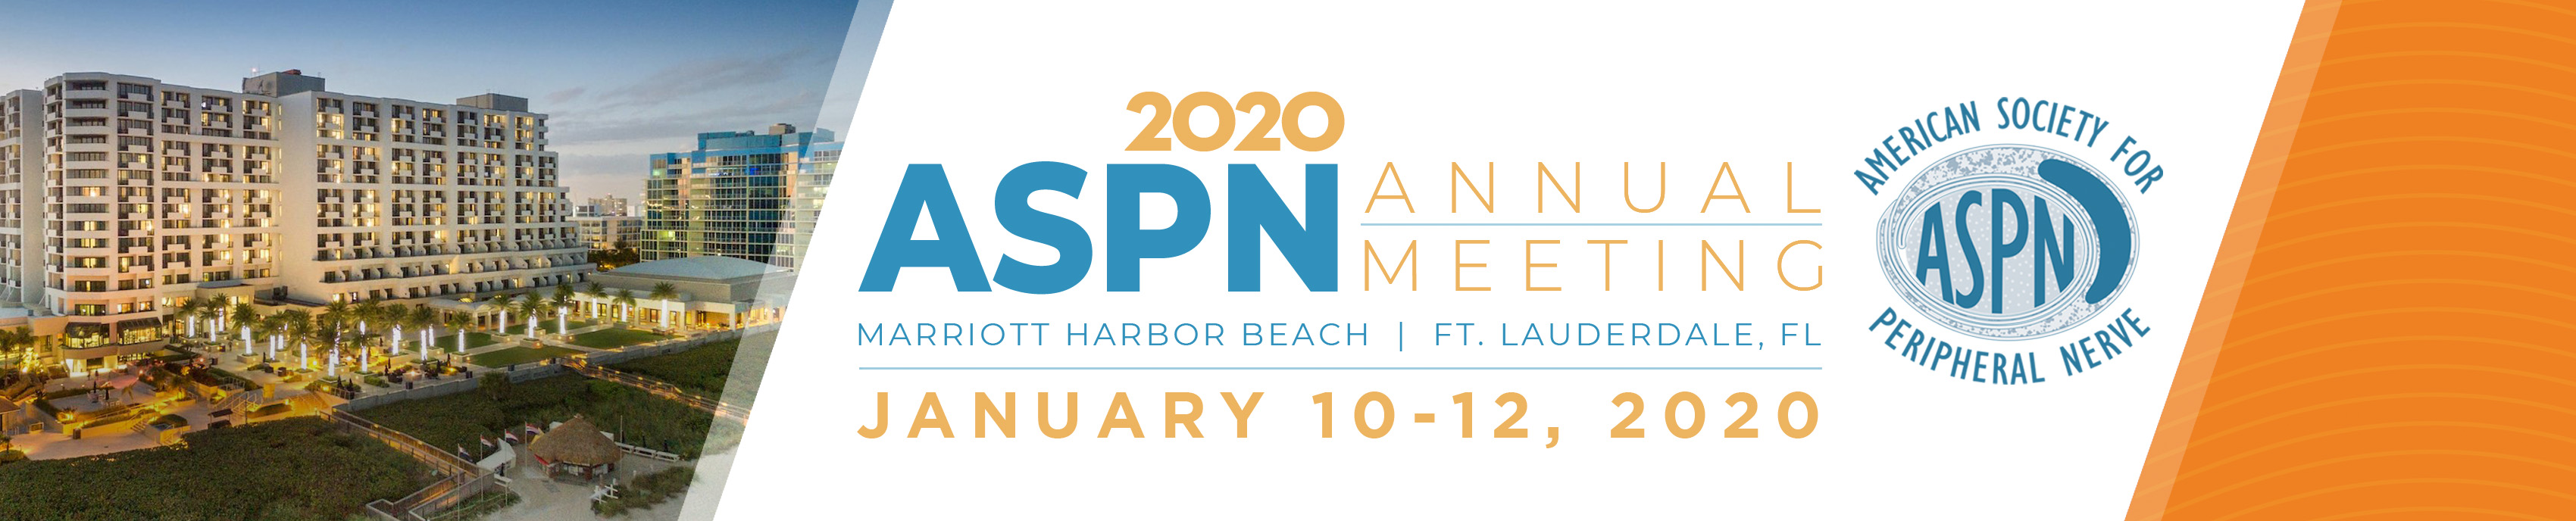 2020 ASPN Annual Meeting